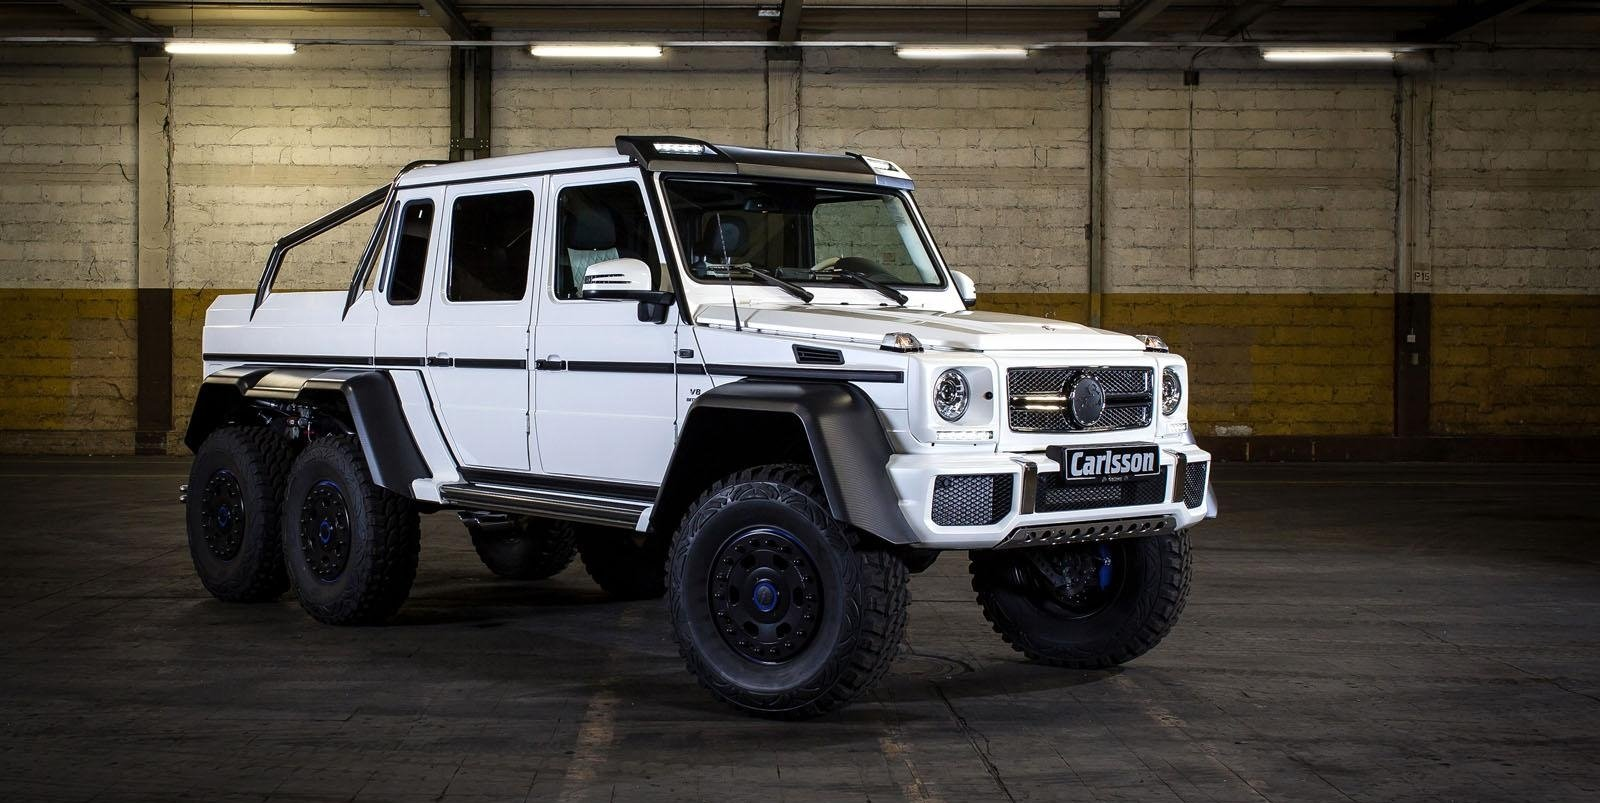 2014 mercedes g63 6 x 6 b_1600x0w mercedes g class reviews, specs & prices top speed  at webbmarketing.co